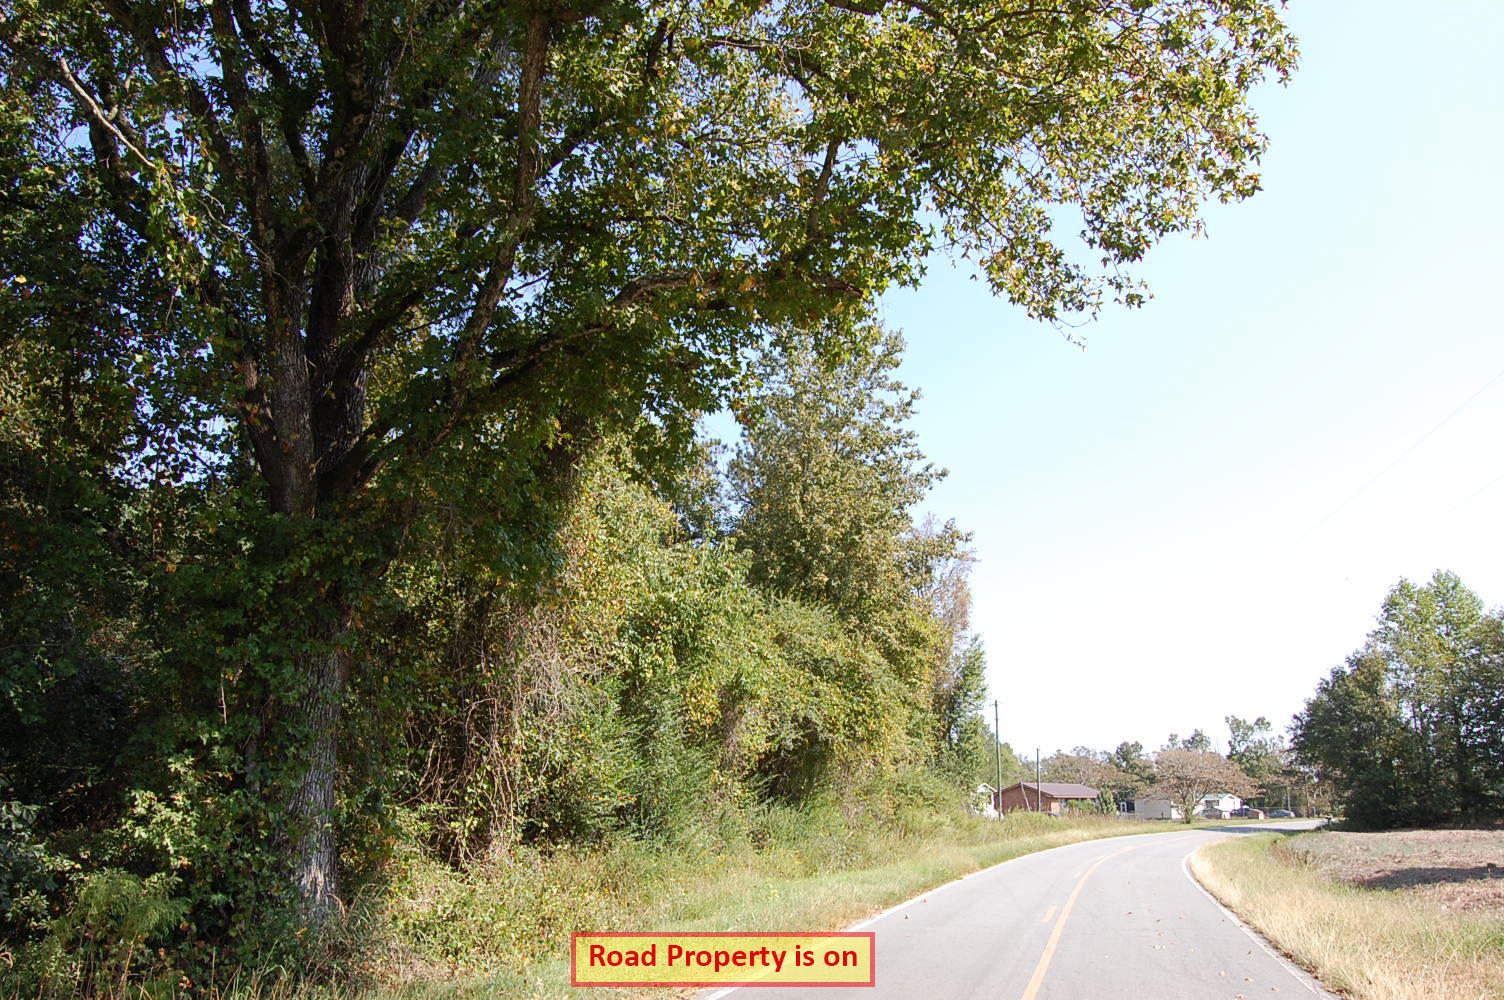 Nearly 1 Acre in Quaint Southern Community - Image 3